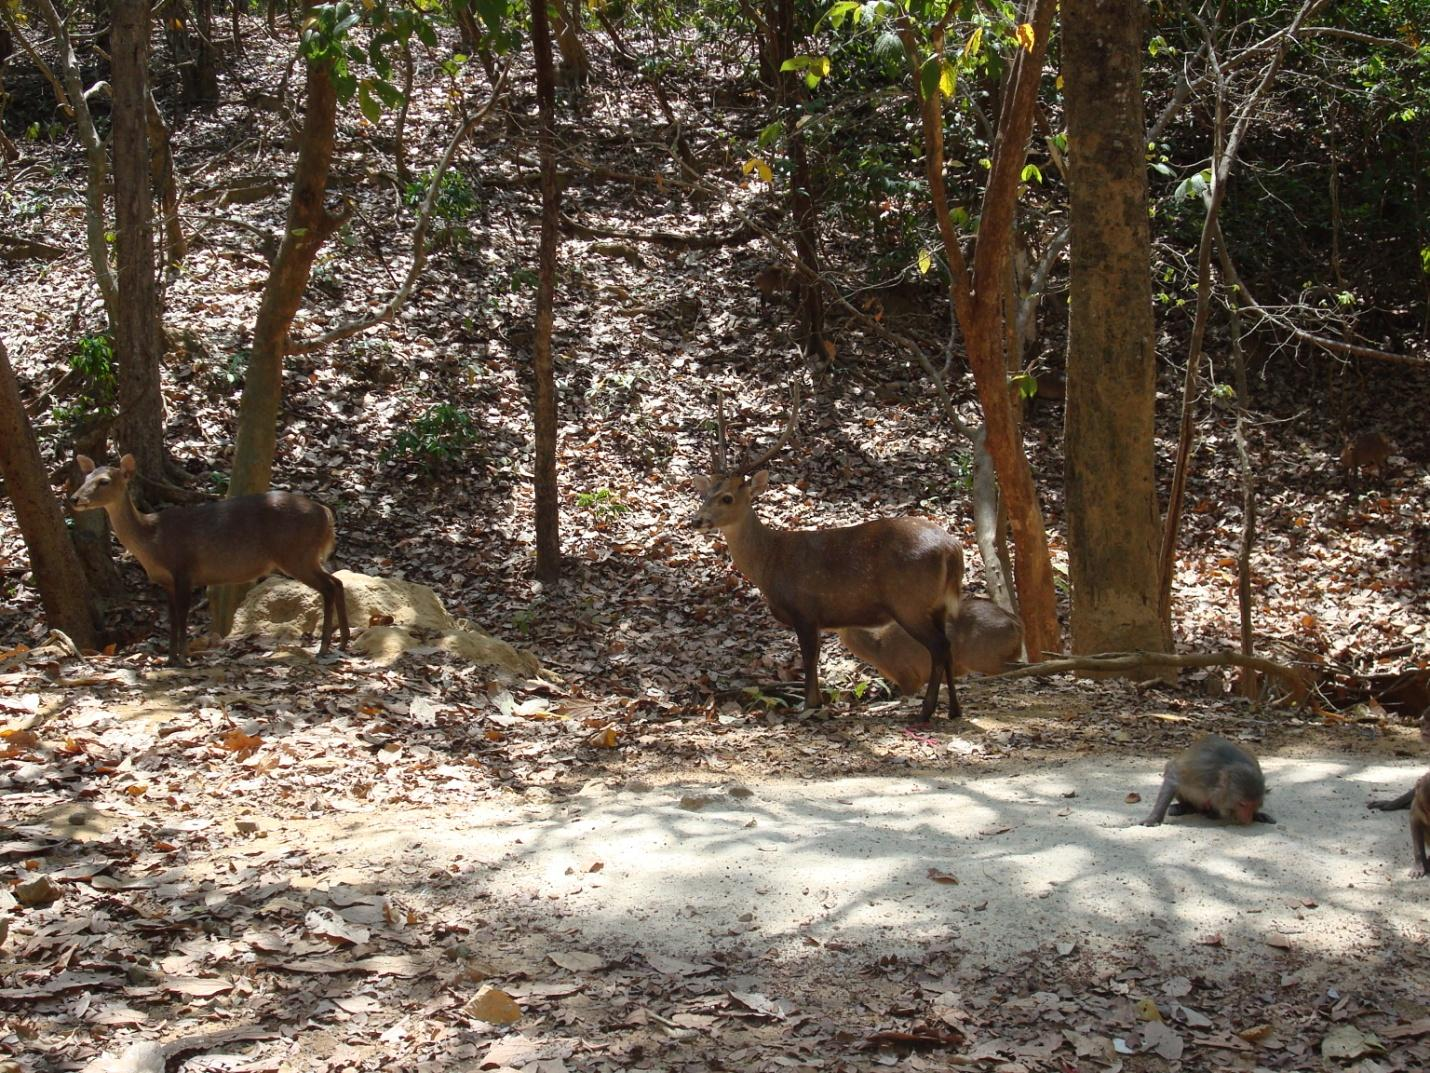 Wildlife in Hlawga National Park